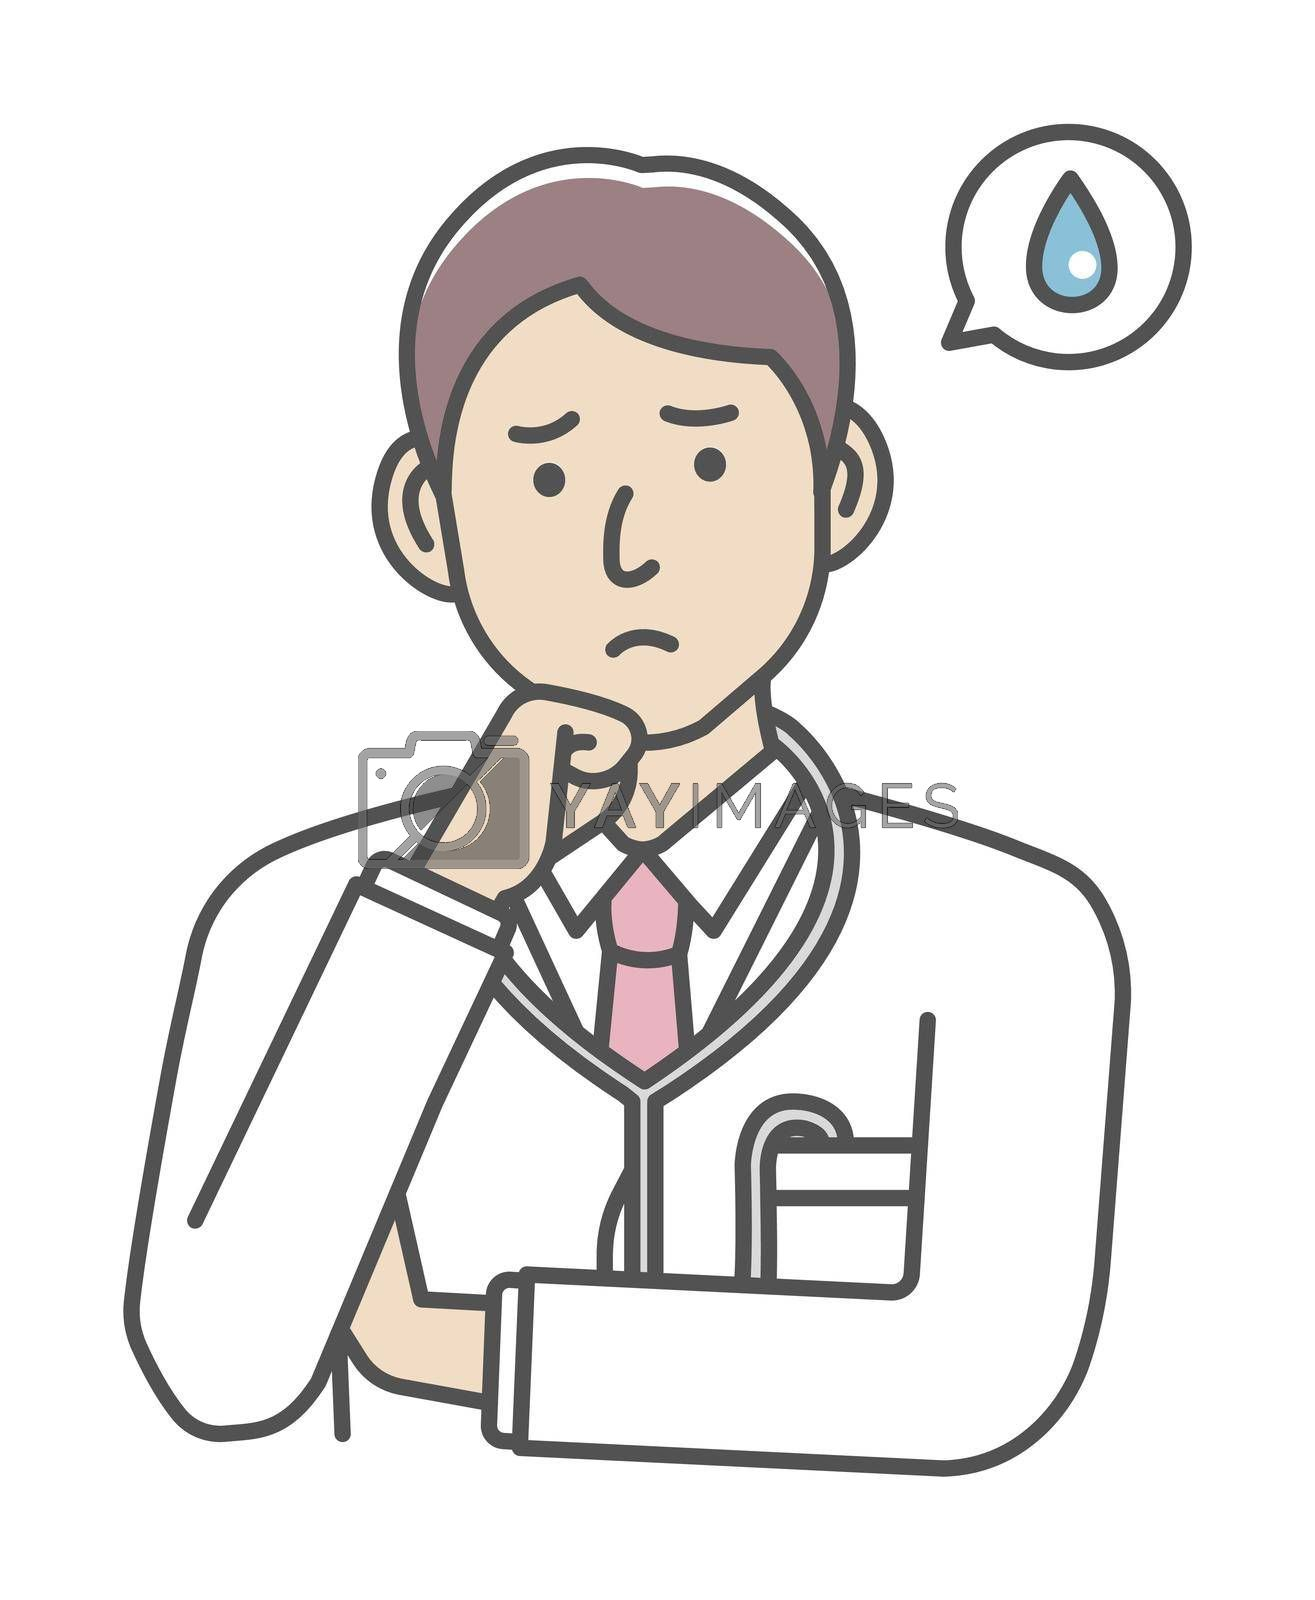 Royalty free image of Young male doctor gesture variation illustration   upset, unhappy by barks